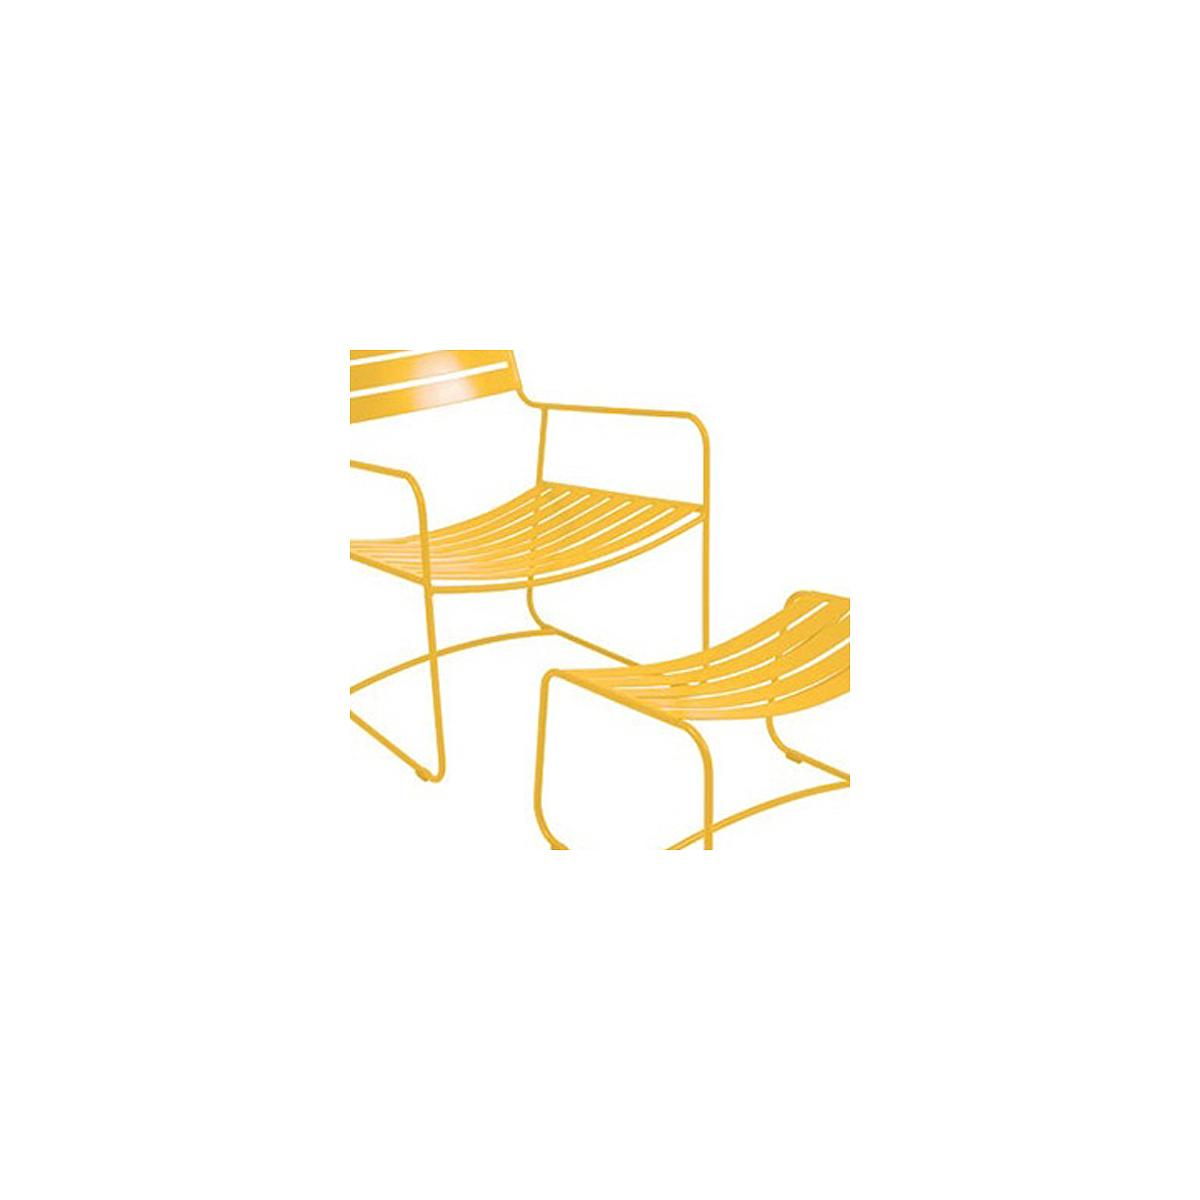 SURPRISING by Fermob Fauteuil + repose pied Jaune miel